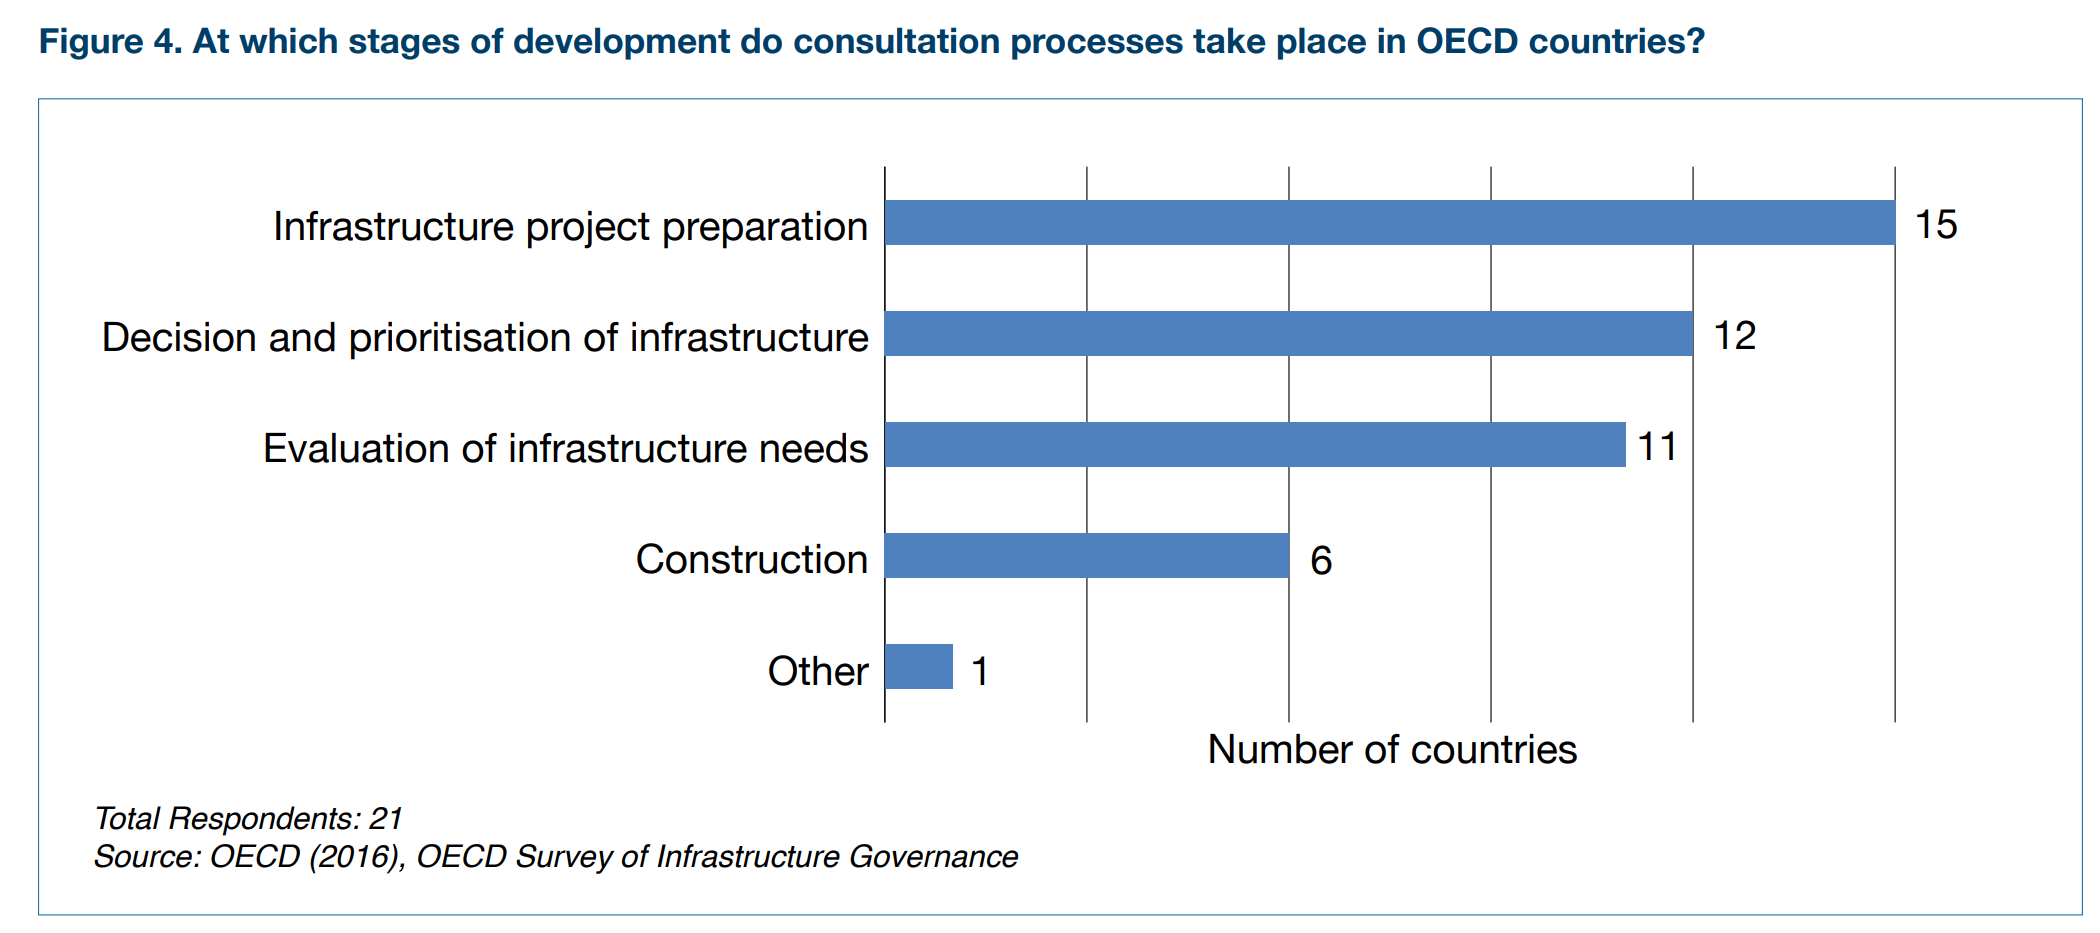 Most OECD countries consult during the early stages of infrastructure projects. The opportunities for public participation often reduce as the project moves on.